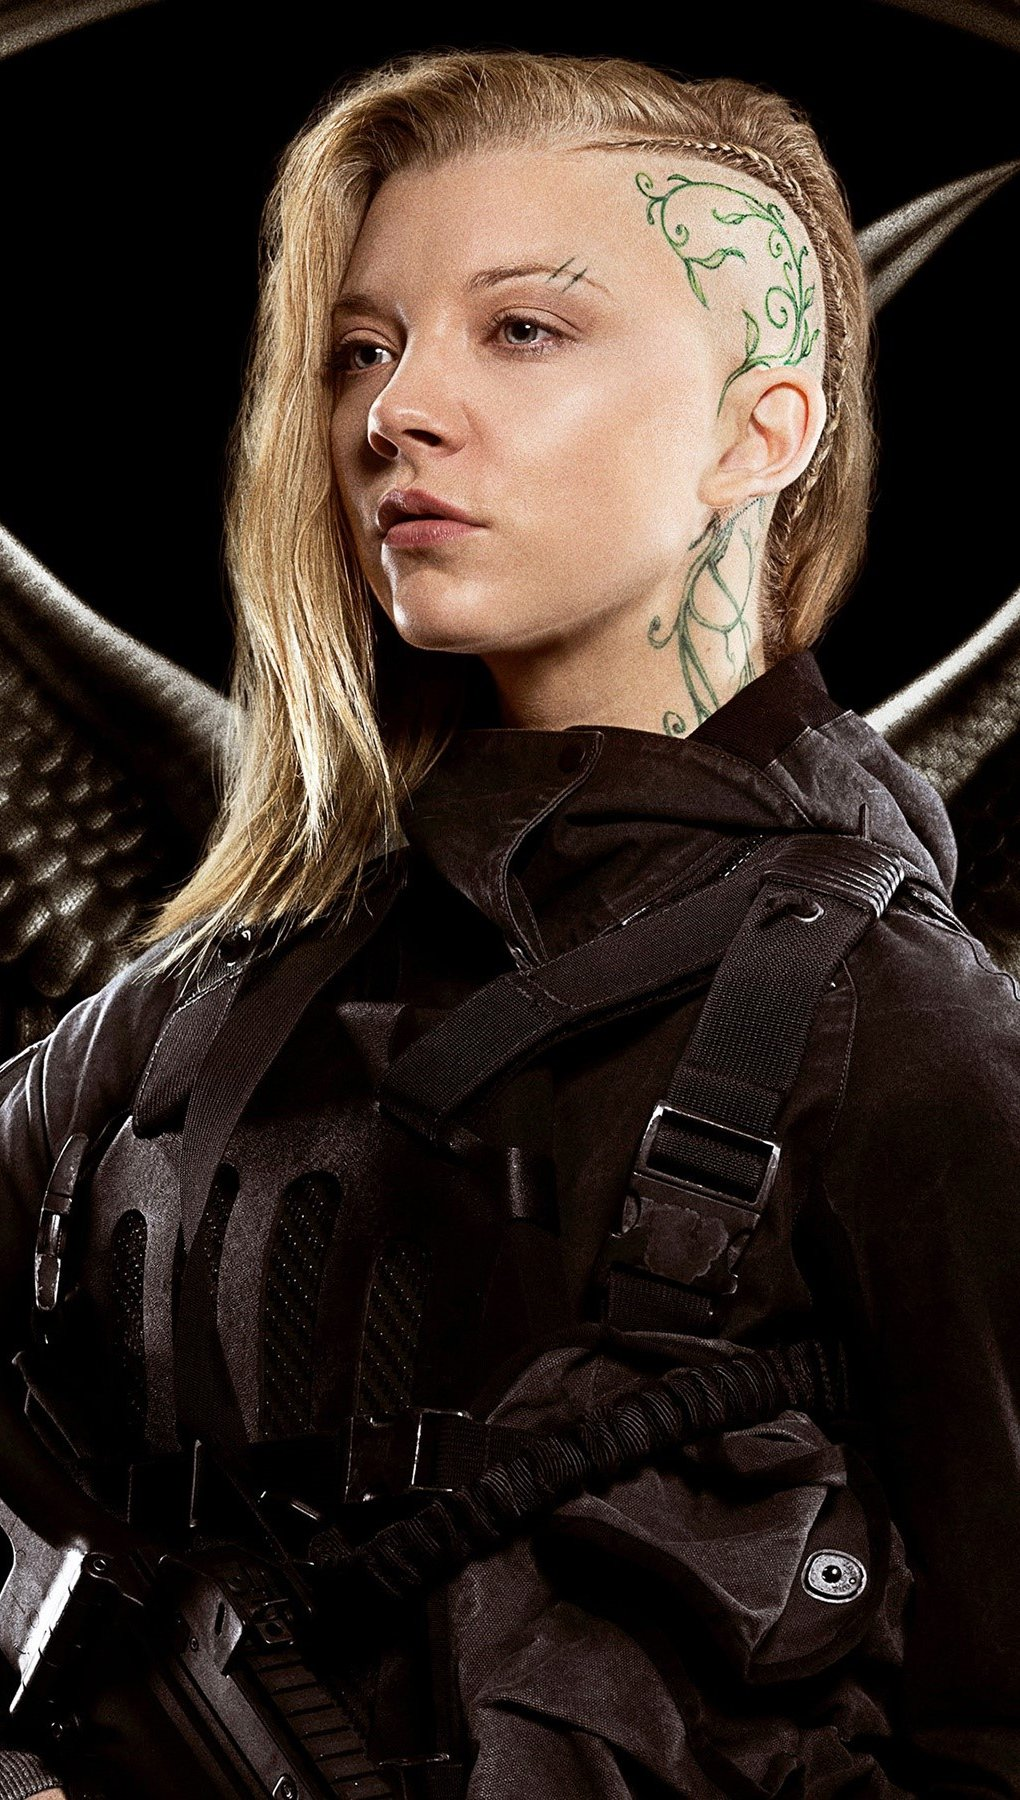 Wallpaper Natalie dormer as Cressida Vertical